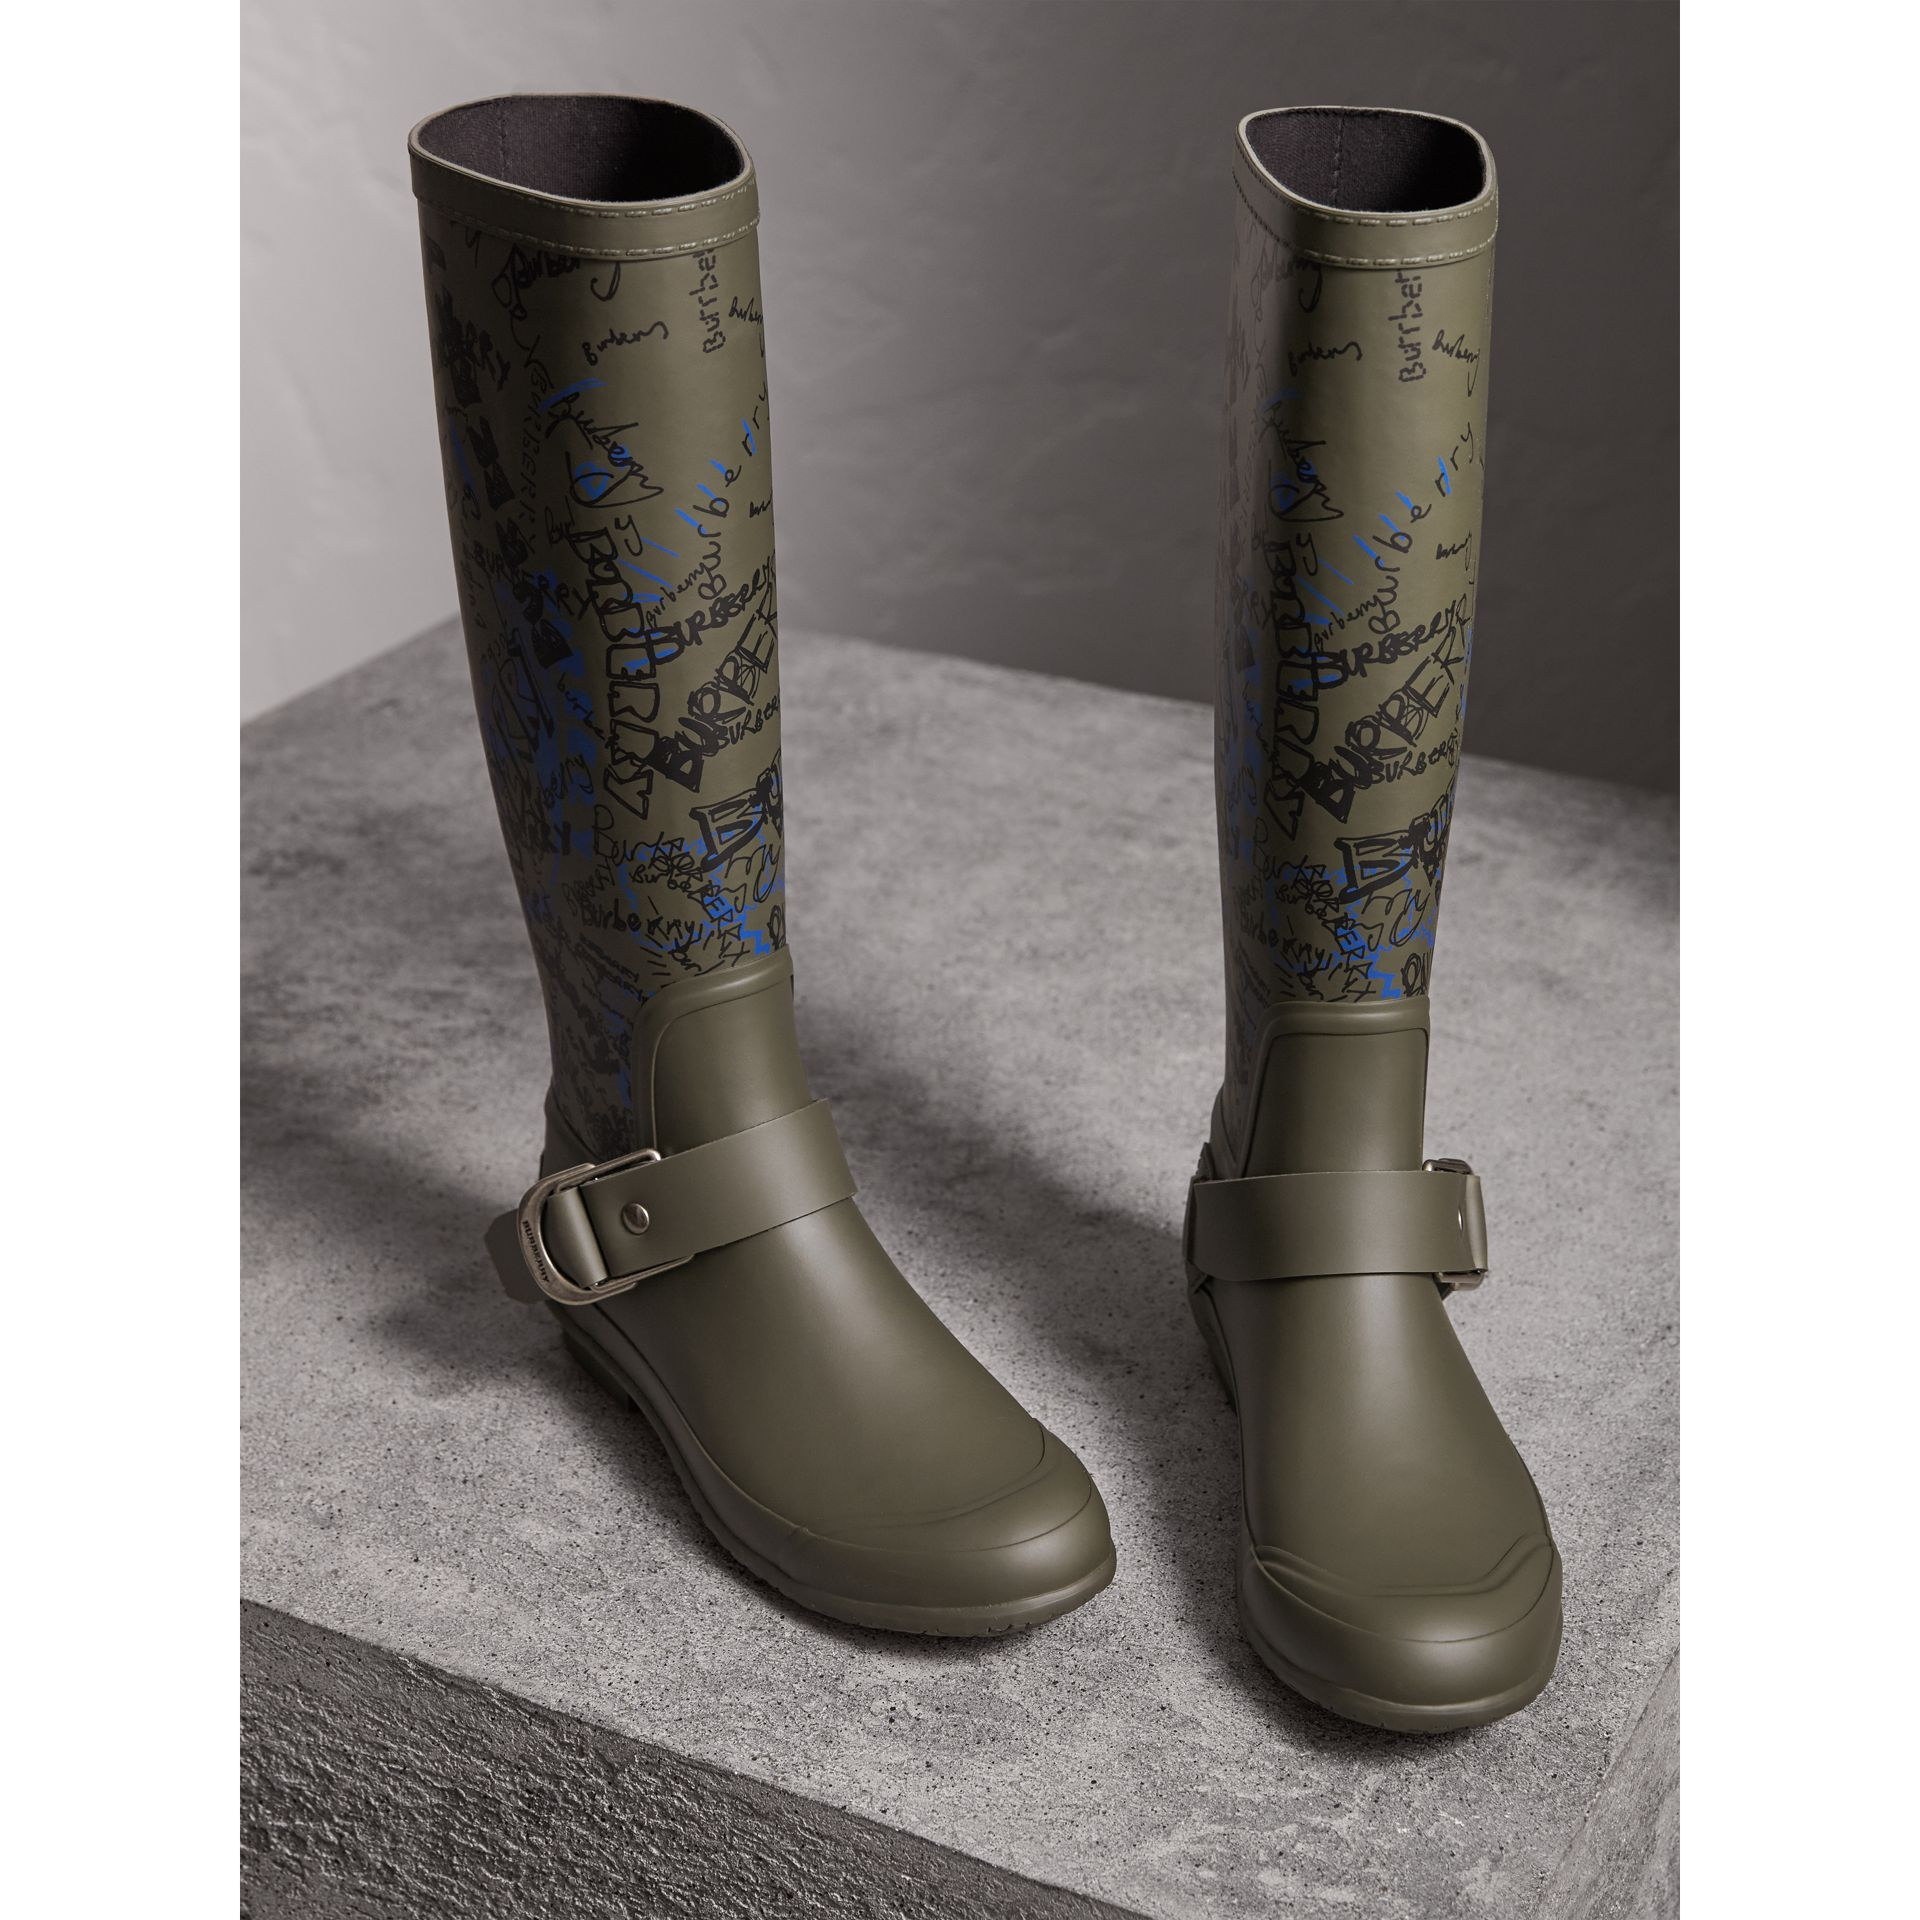 Doodle Print Rubber Rain Boots in Military Green - Women | Burberry Singapore - gallery image 4